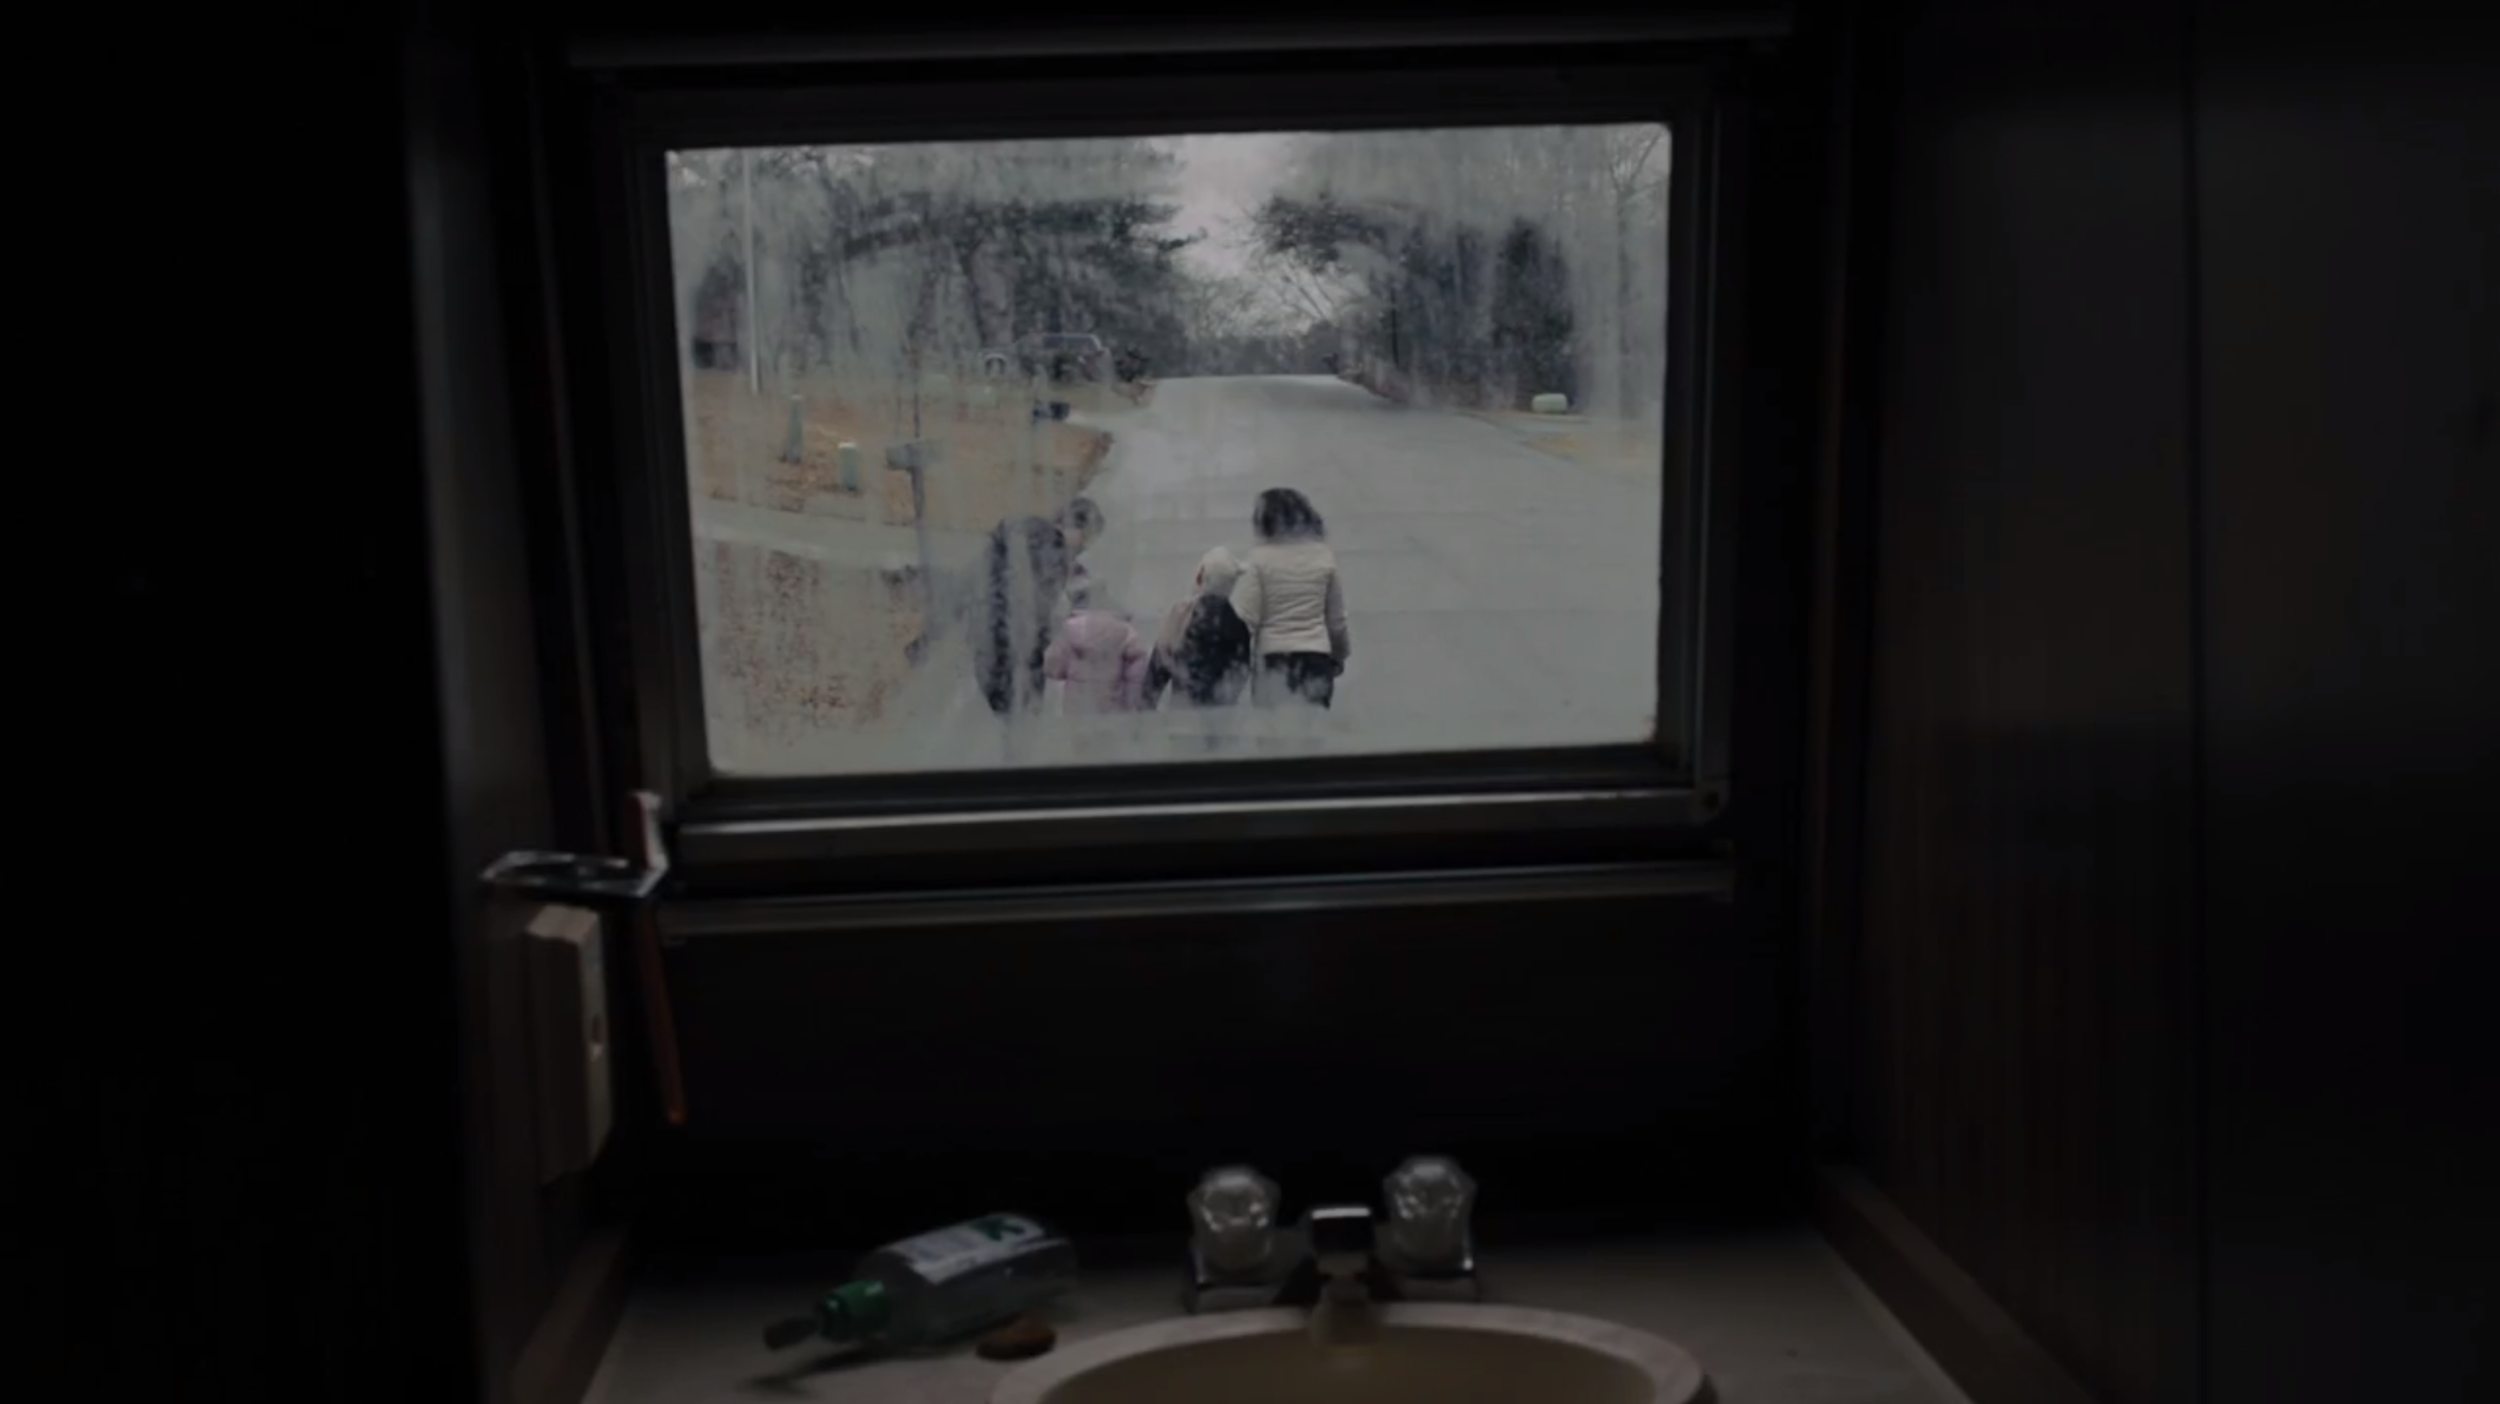 Prisoners - This shot gives an impression of the kidnapper and the family at the same time.